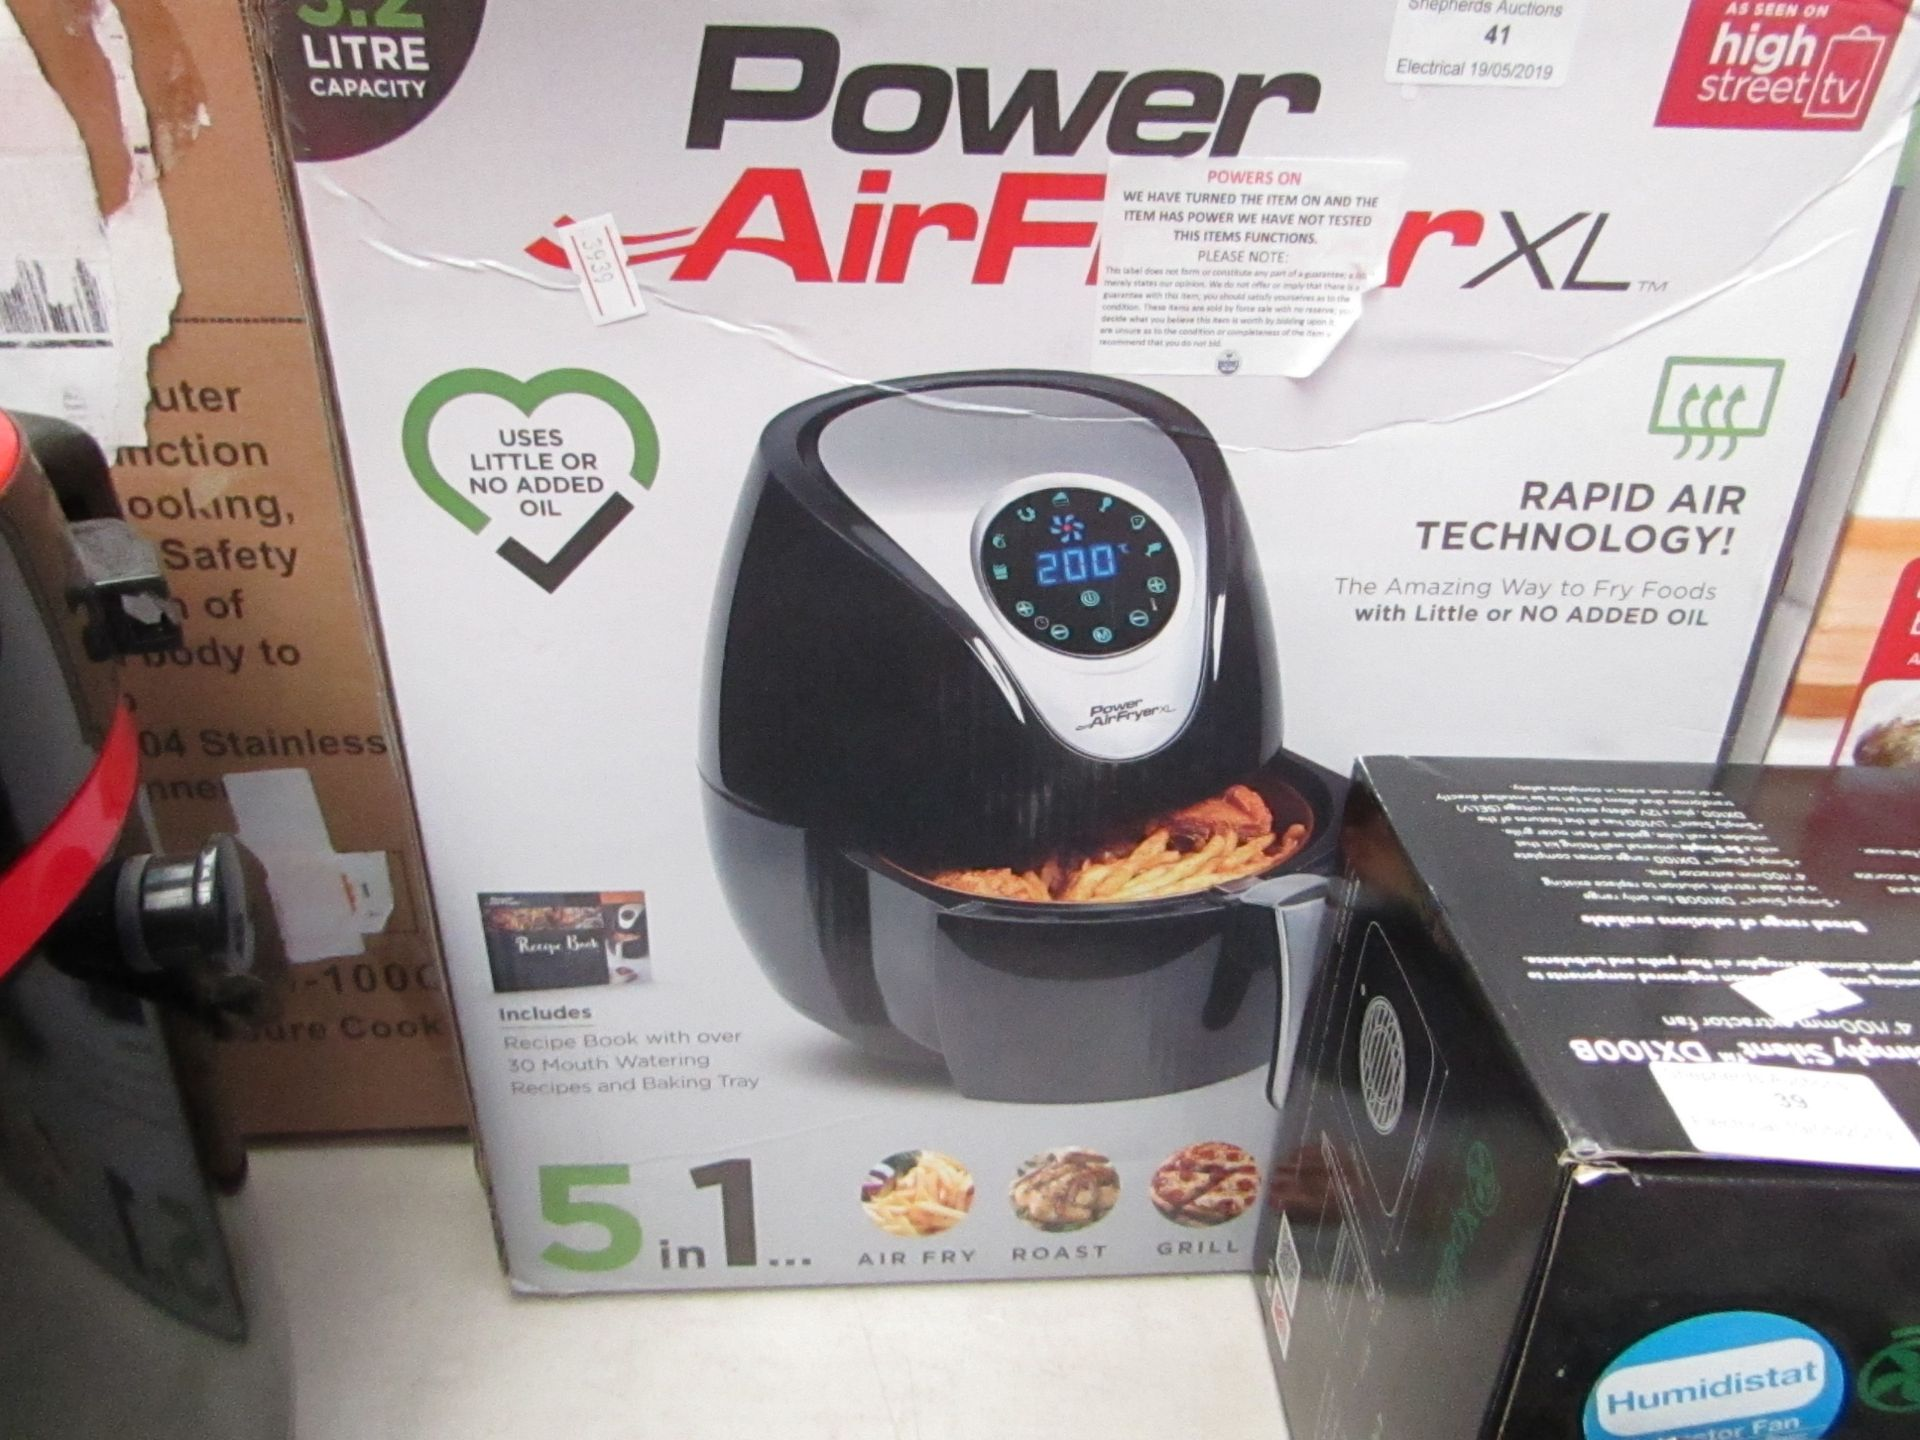 Lot 41 - Power Airfryer XL, Powers On & Boxed